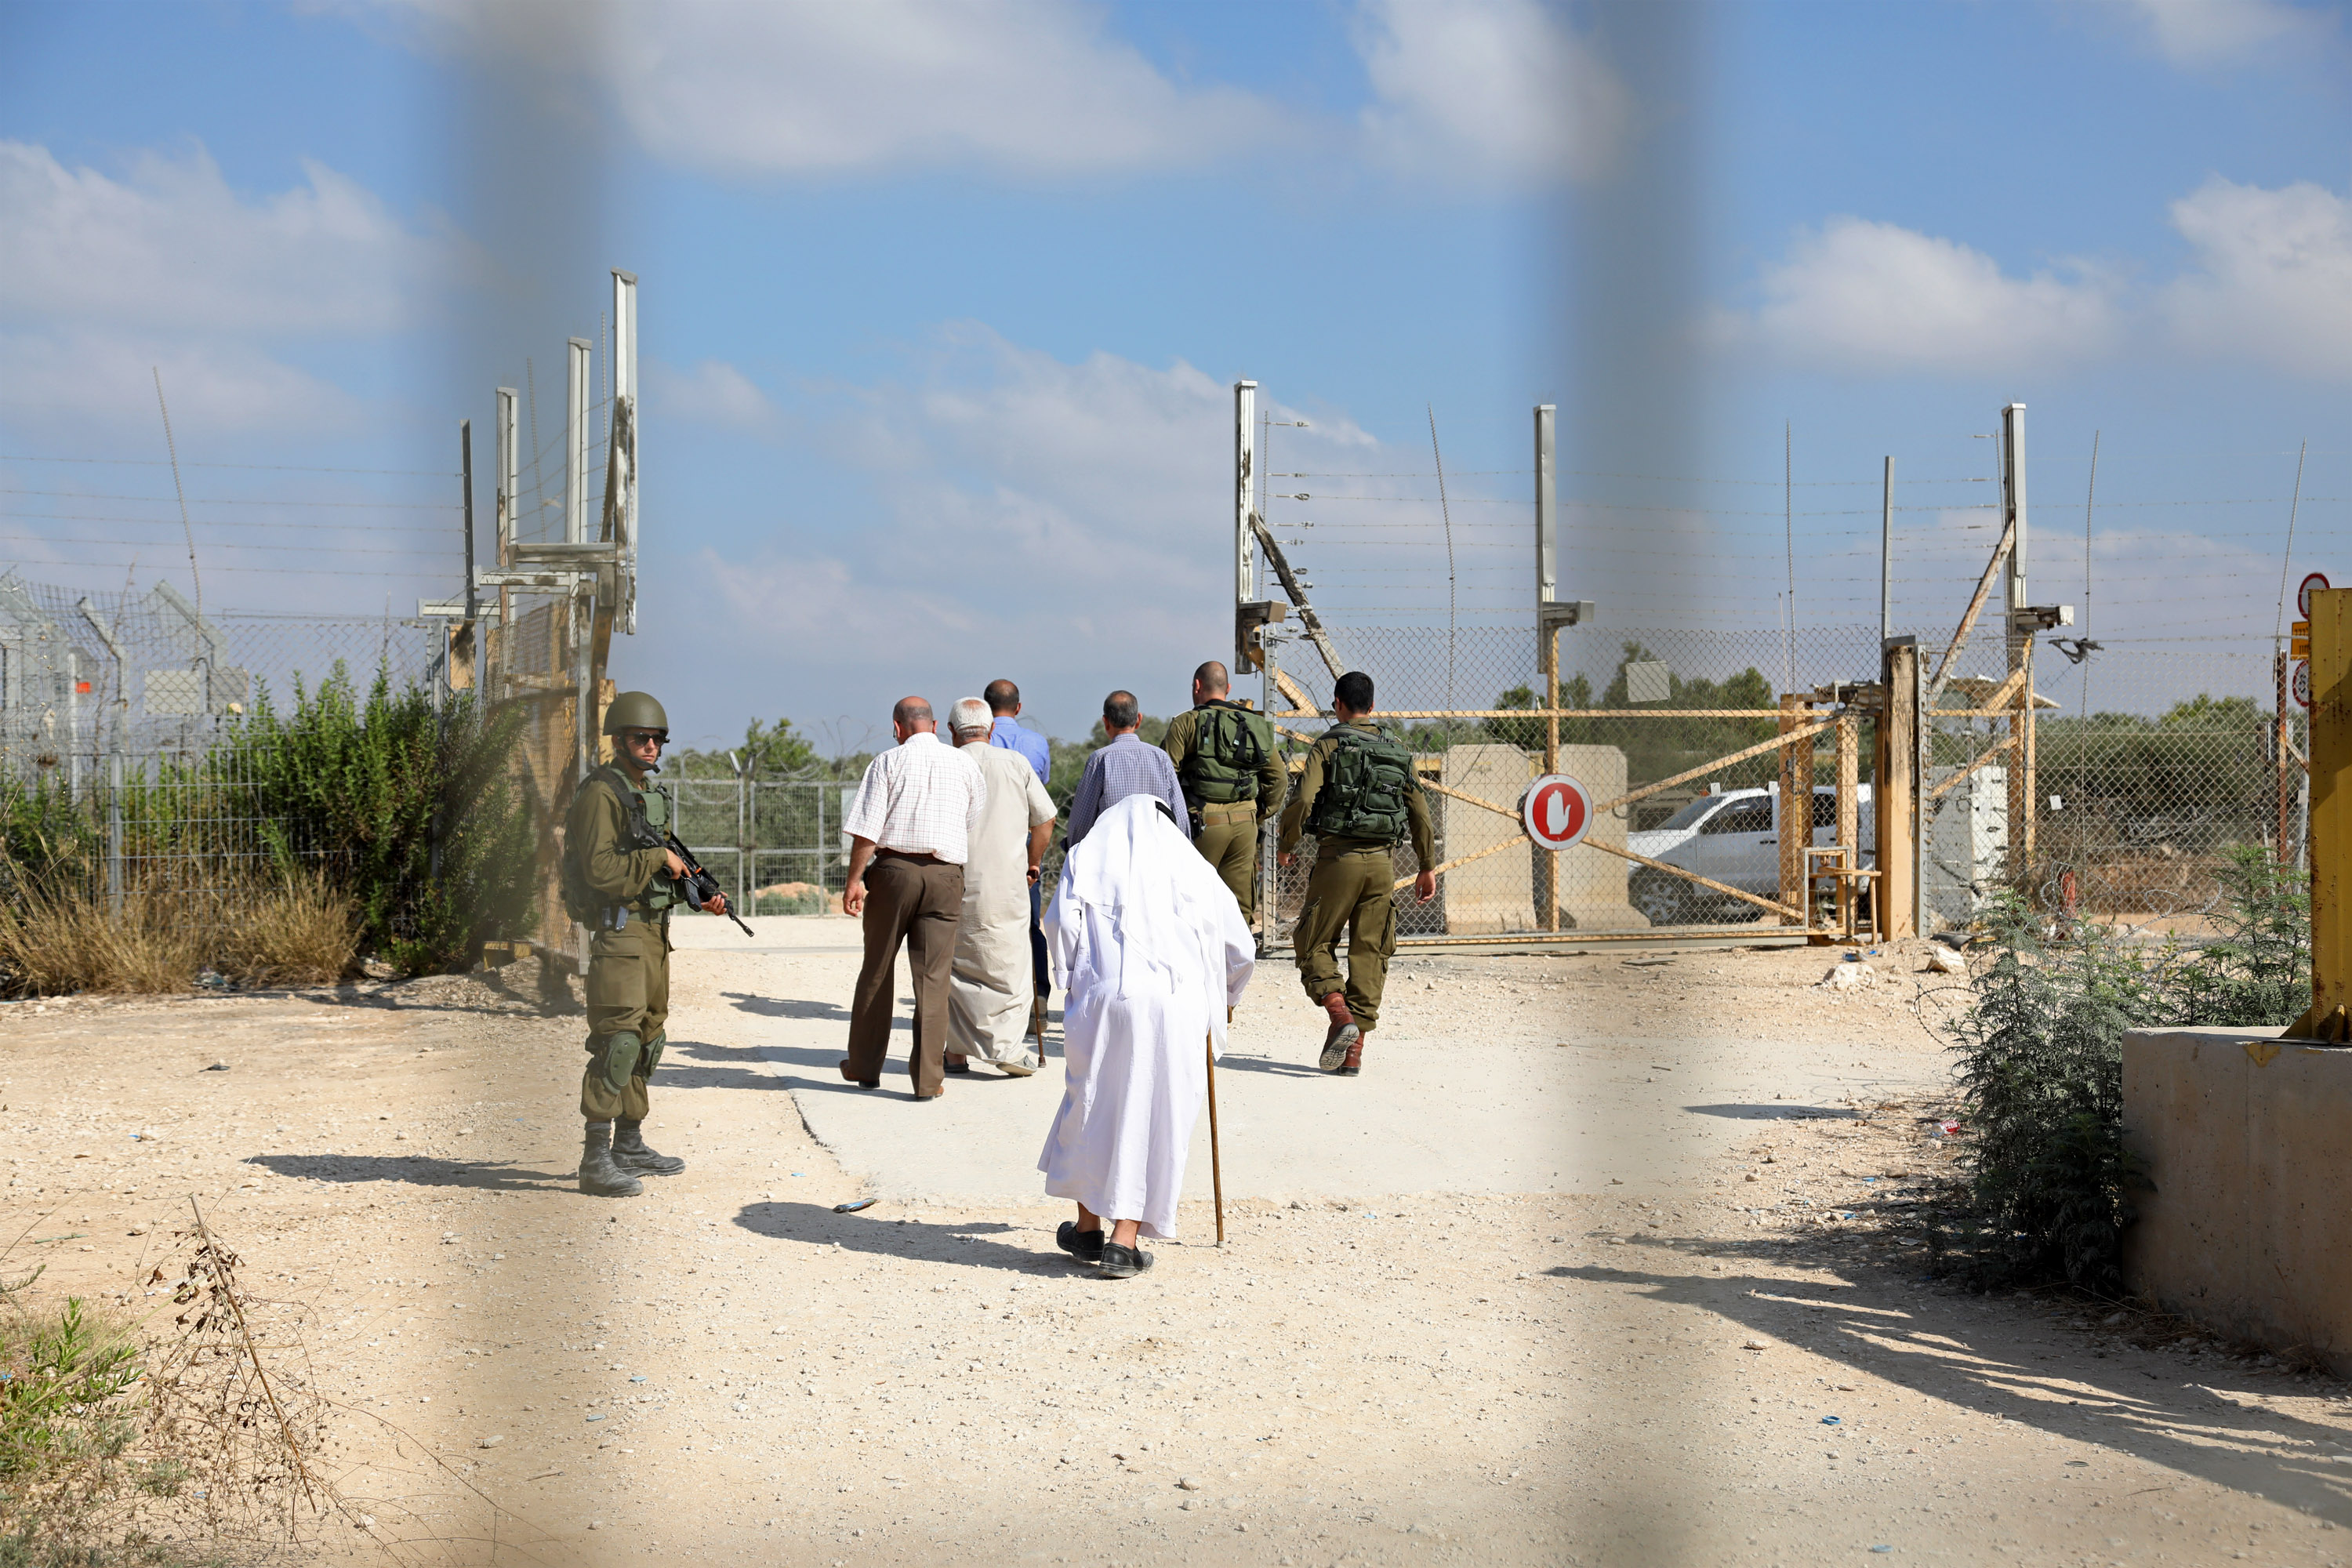 Palestinian farmers negotiate with Israeli soldiers at a military gate in the northern West Bank, demanding the Israeli army ease restrictions to allow them to more easily enter and exit, Deir Al Ghusun, July 9, 2017. (Haidi Motola/Activestills.org)